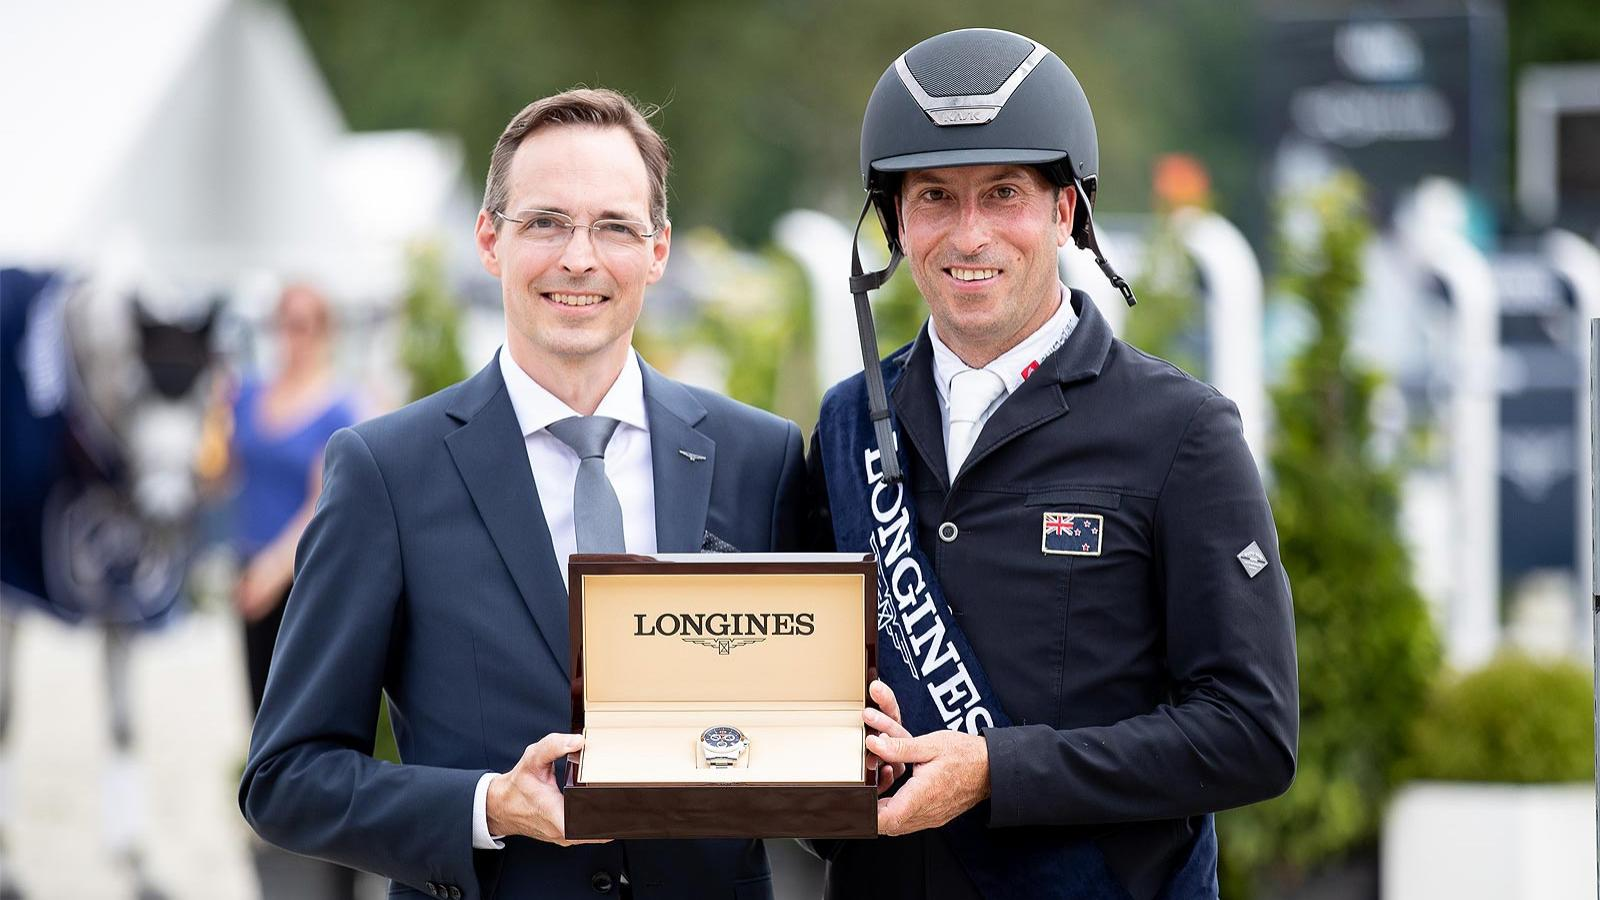 Longines Lühmuhlen Horse Trials; Eventing; 2019